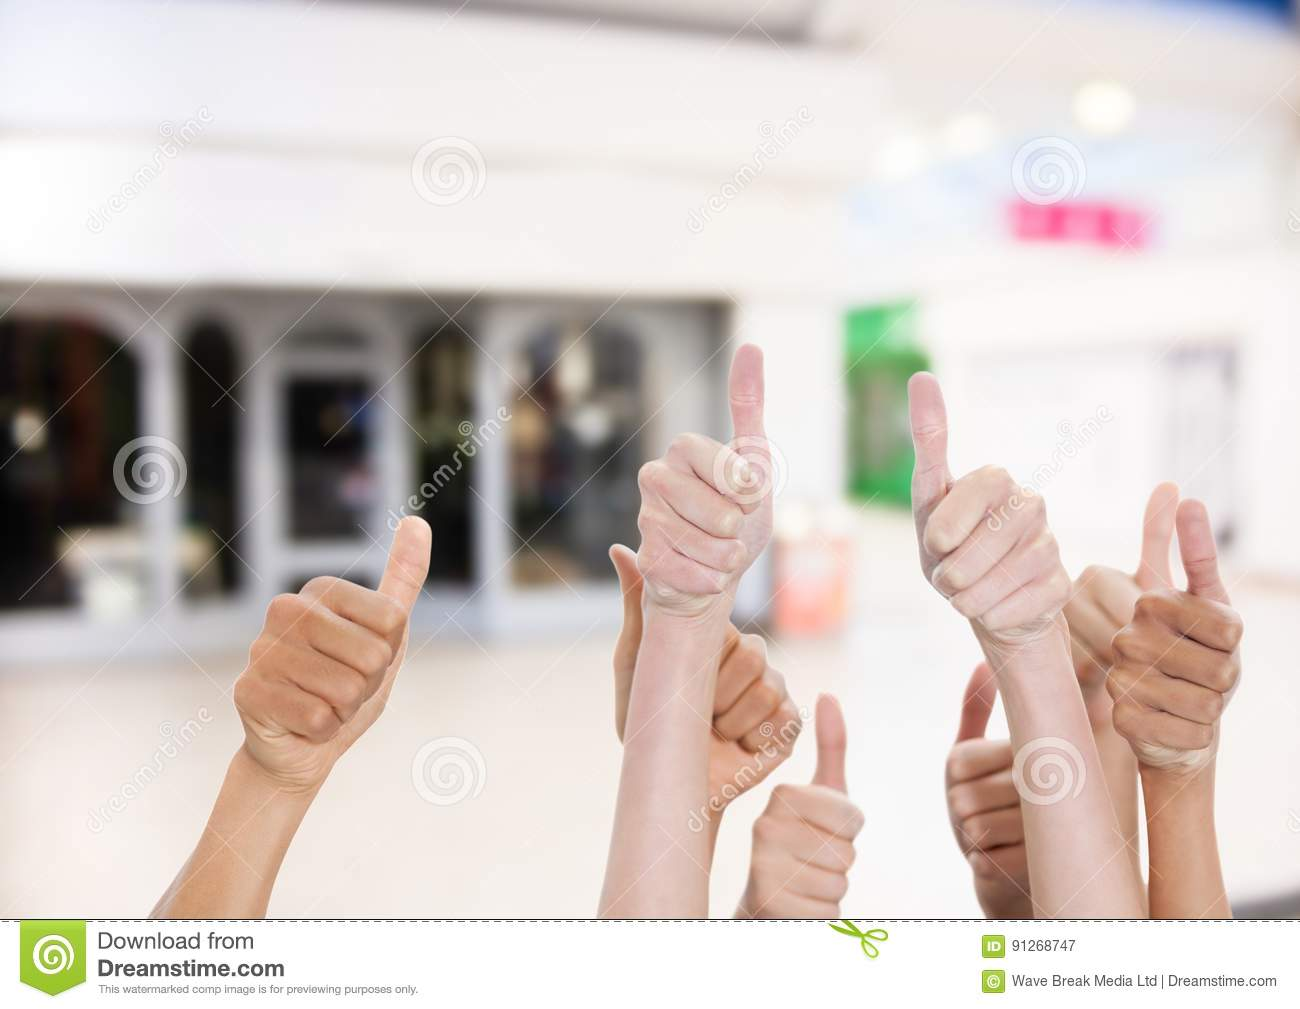 Thumbs up in the shopping center.